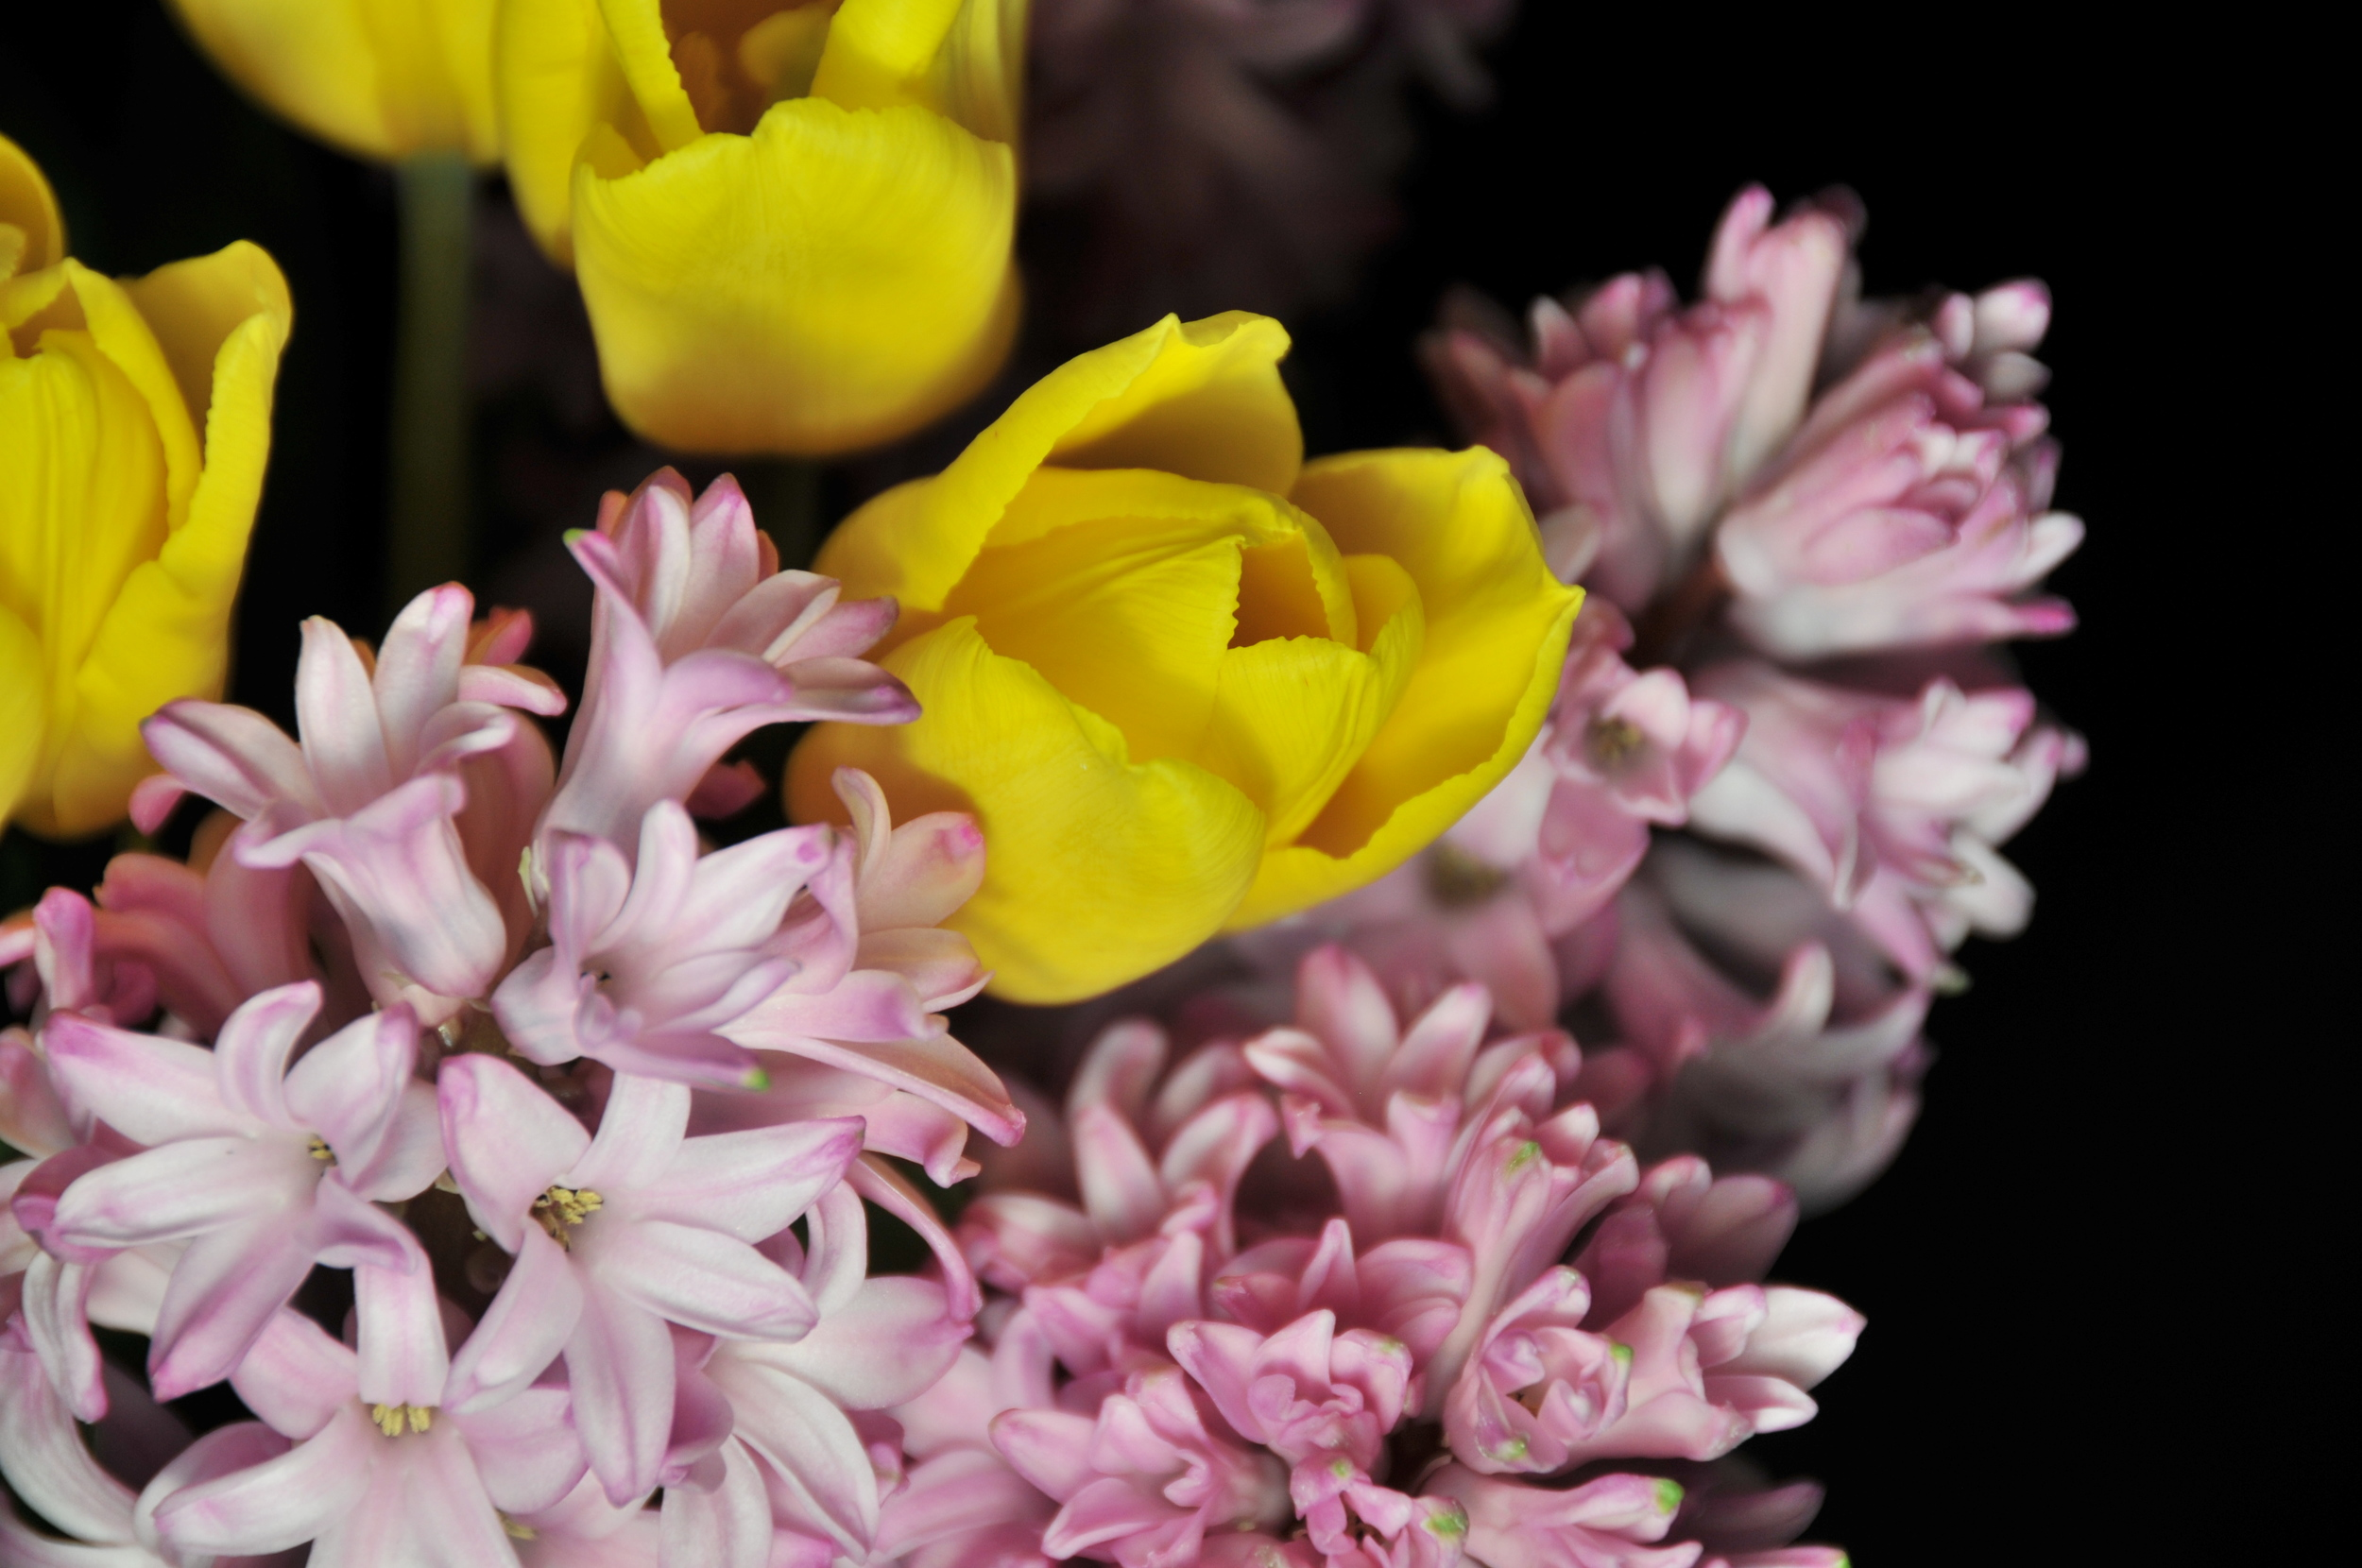 Yellow Tulips and Pink Hyacinths